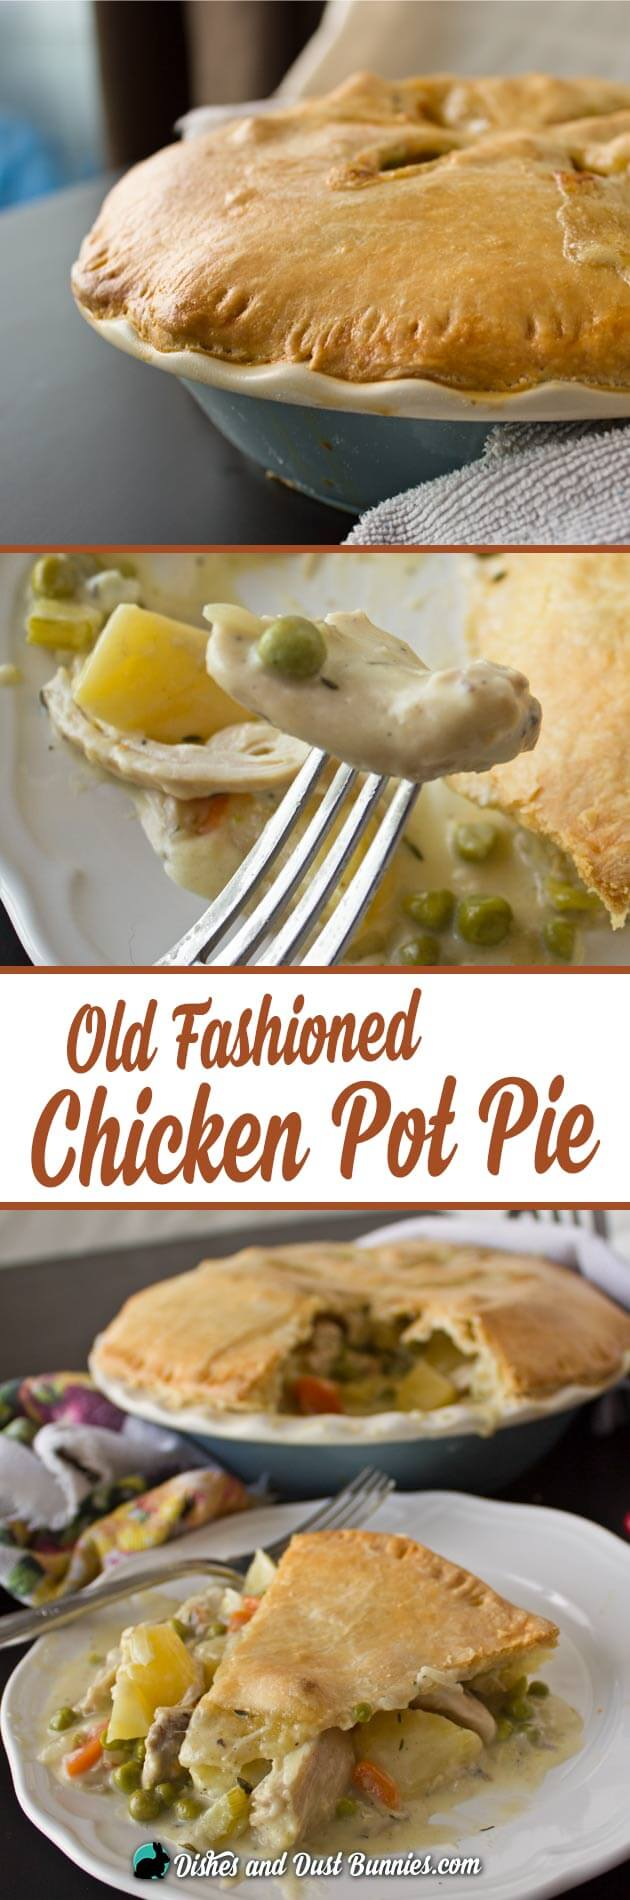 The Best Old Fashioned Chicken Pot Pie Ever! from dishesanddustbunnies ...